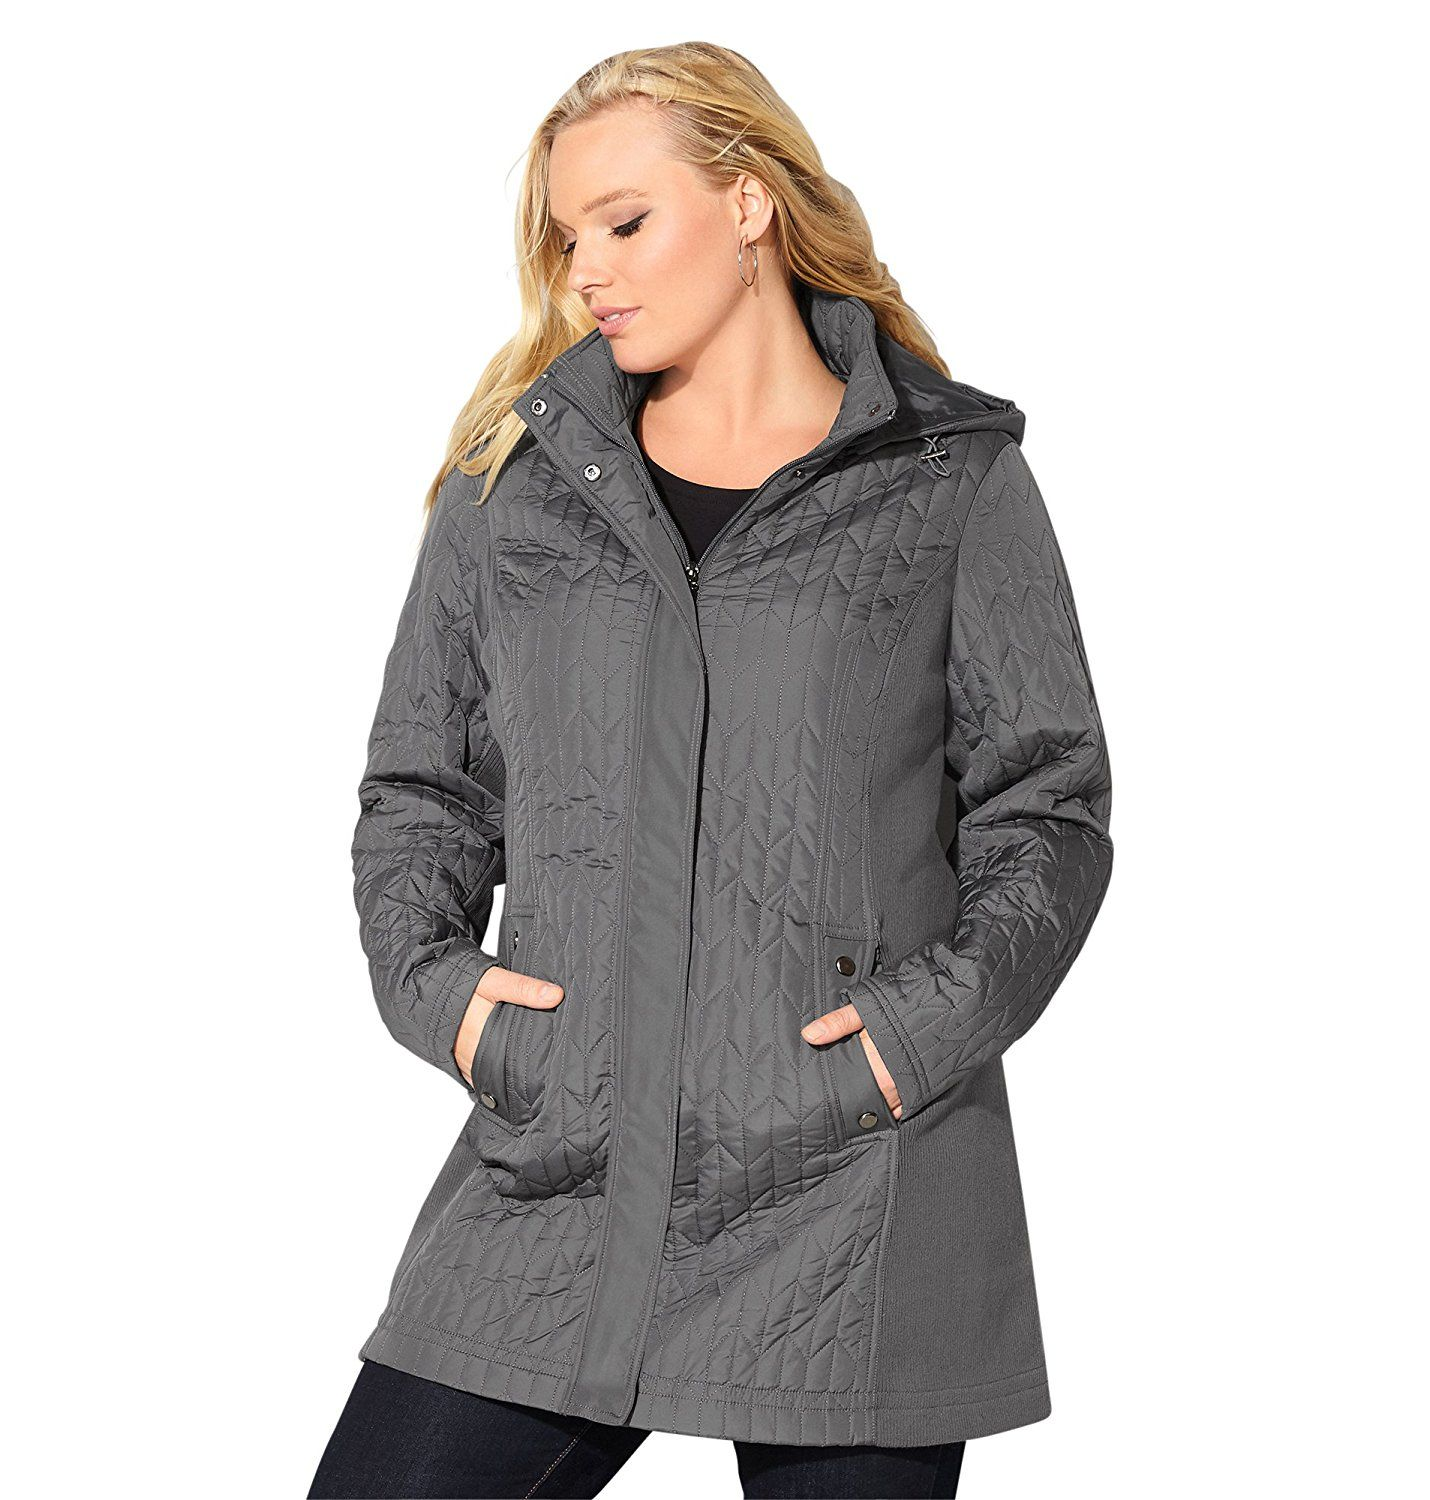 Avenue Women's Herringbone Quilted Jacket with Knit Sides * See ... : quilted jacket plus size - Adamdwight.com